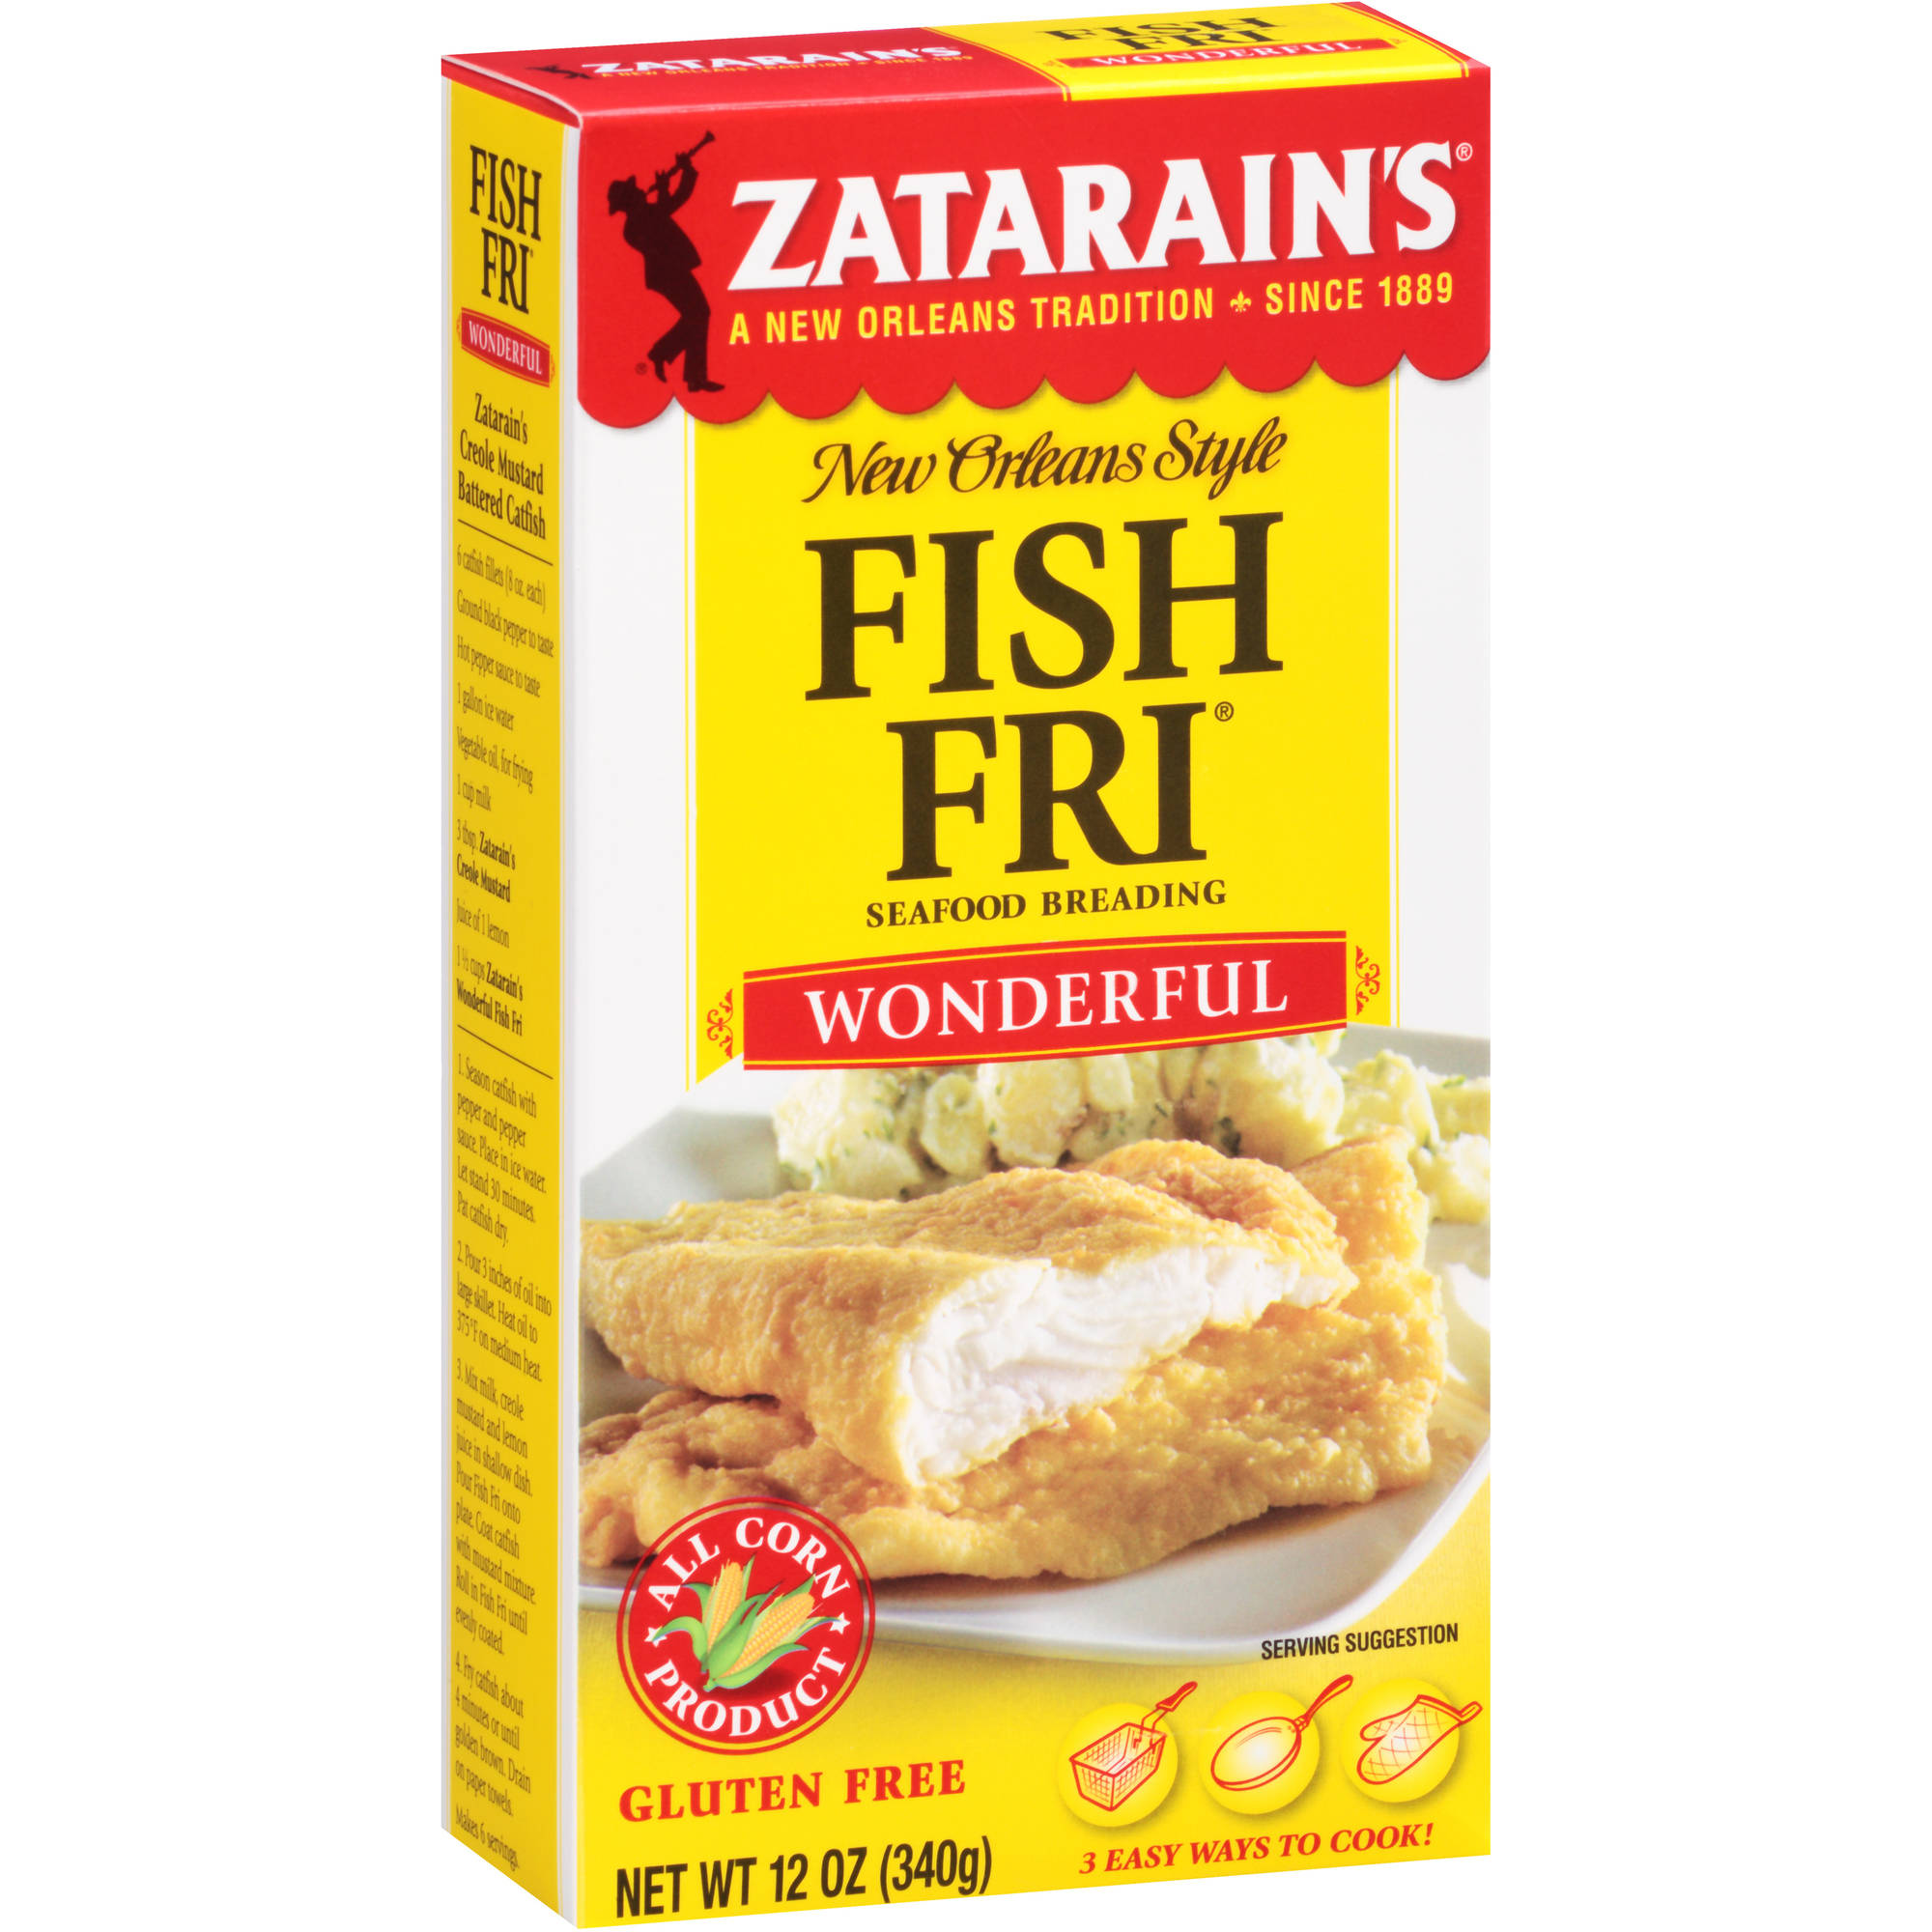 Zatarain's Wonderful Fish-Fri Seafood Breading, 12 oz